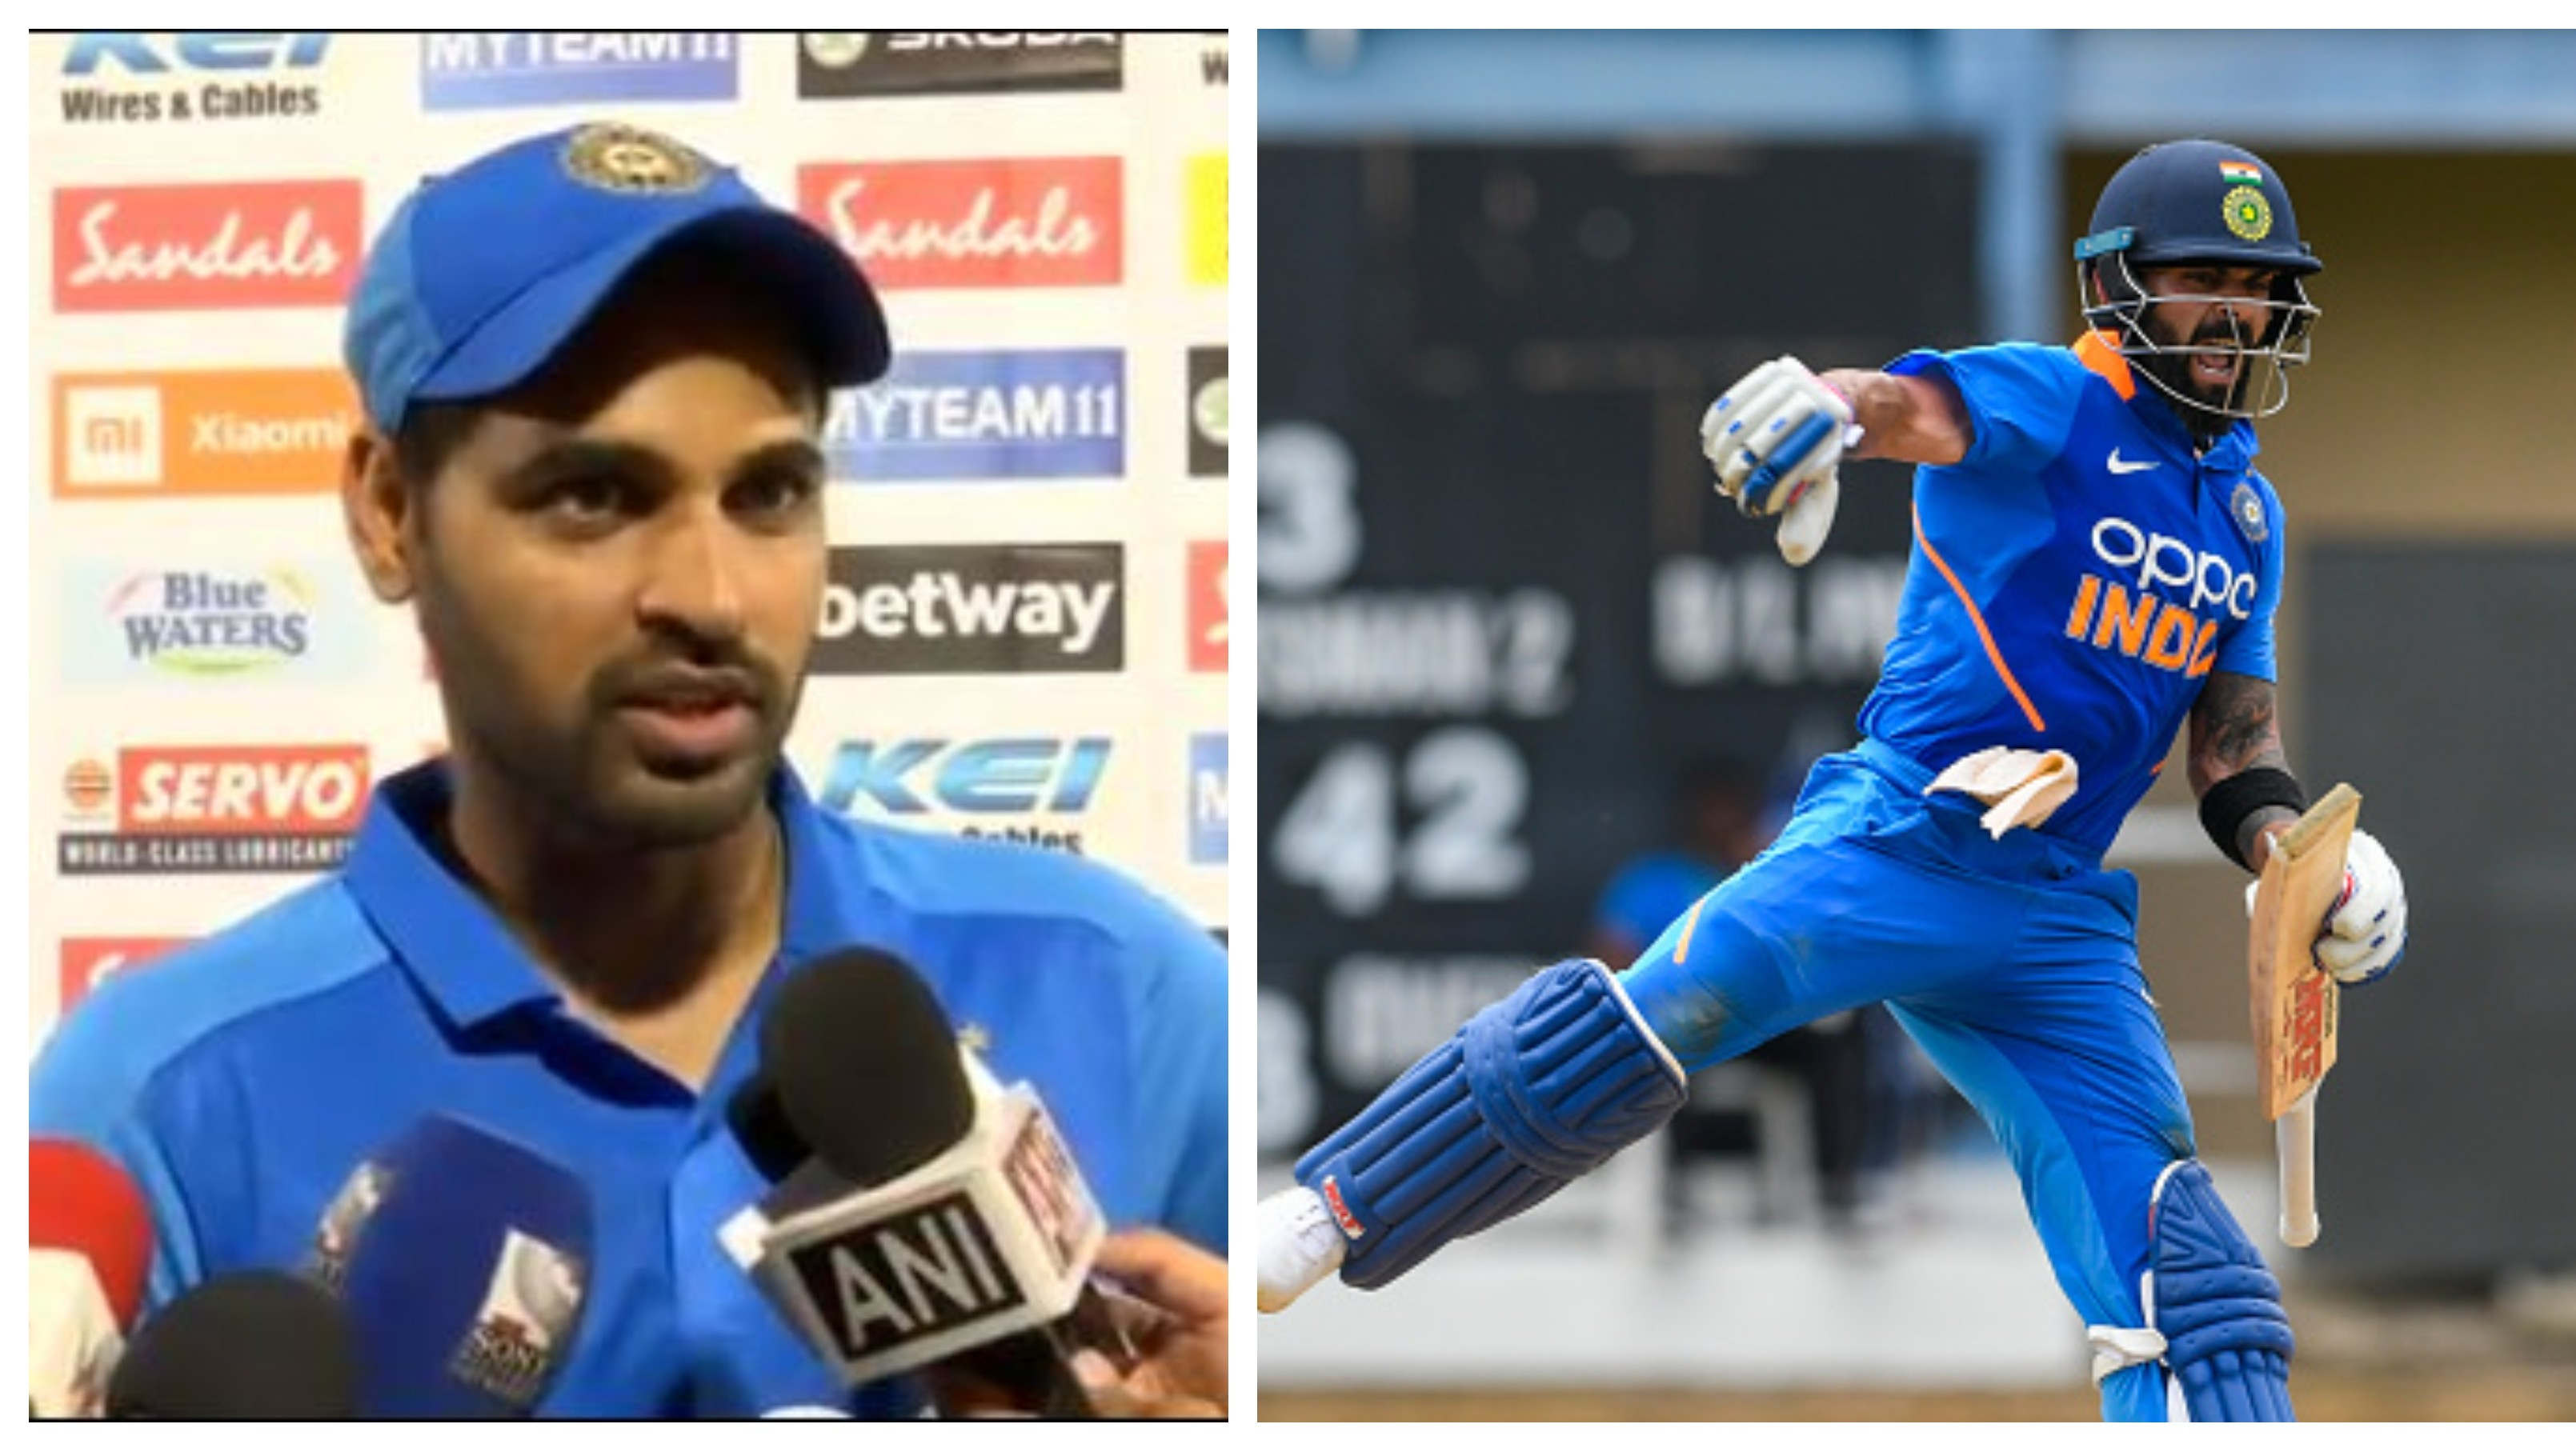 WI v IND 2019: Virat's expression said how badly he wanted this hundred, reckons Bhuvneshwar Kumar